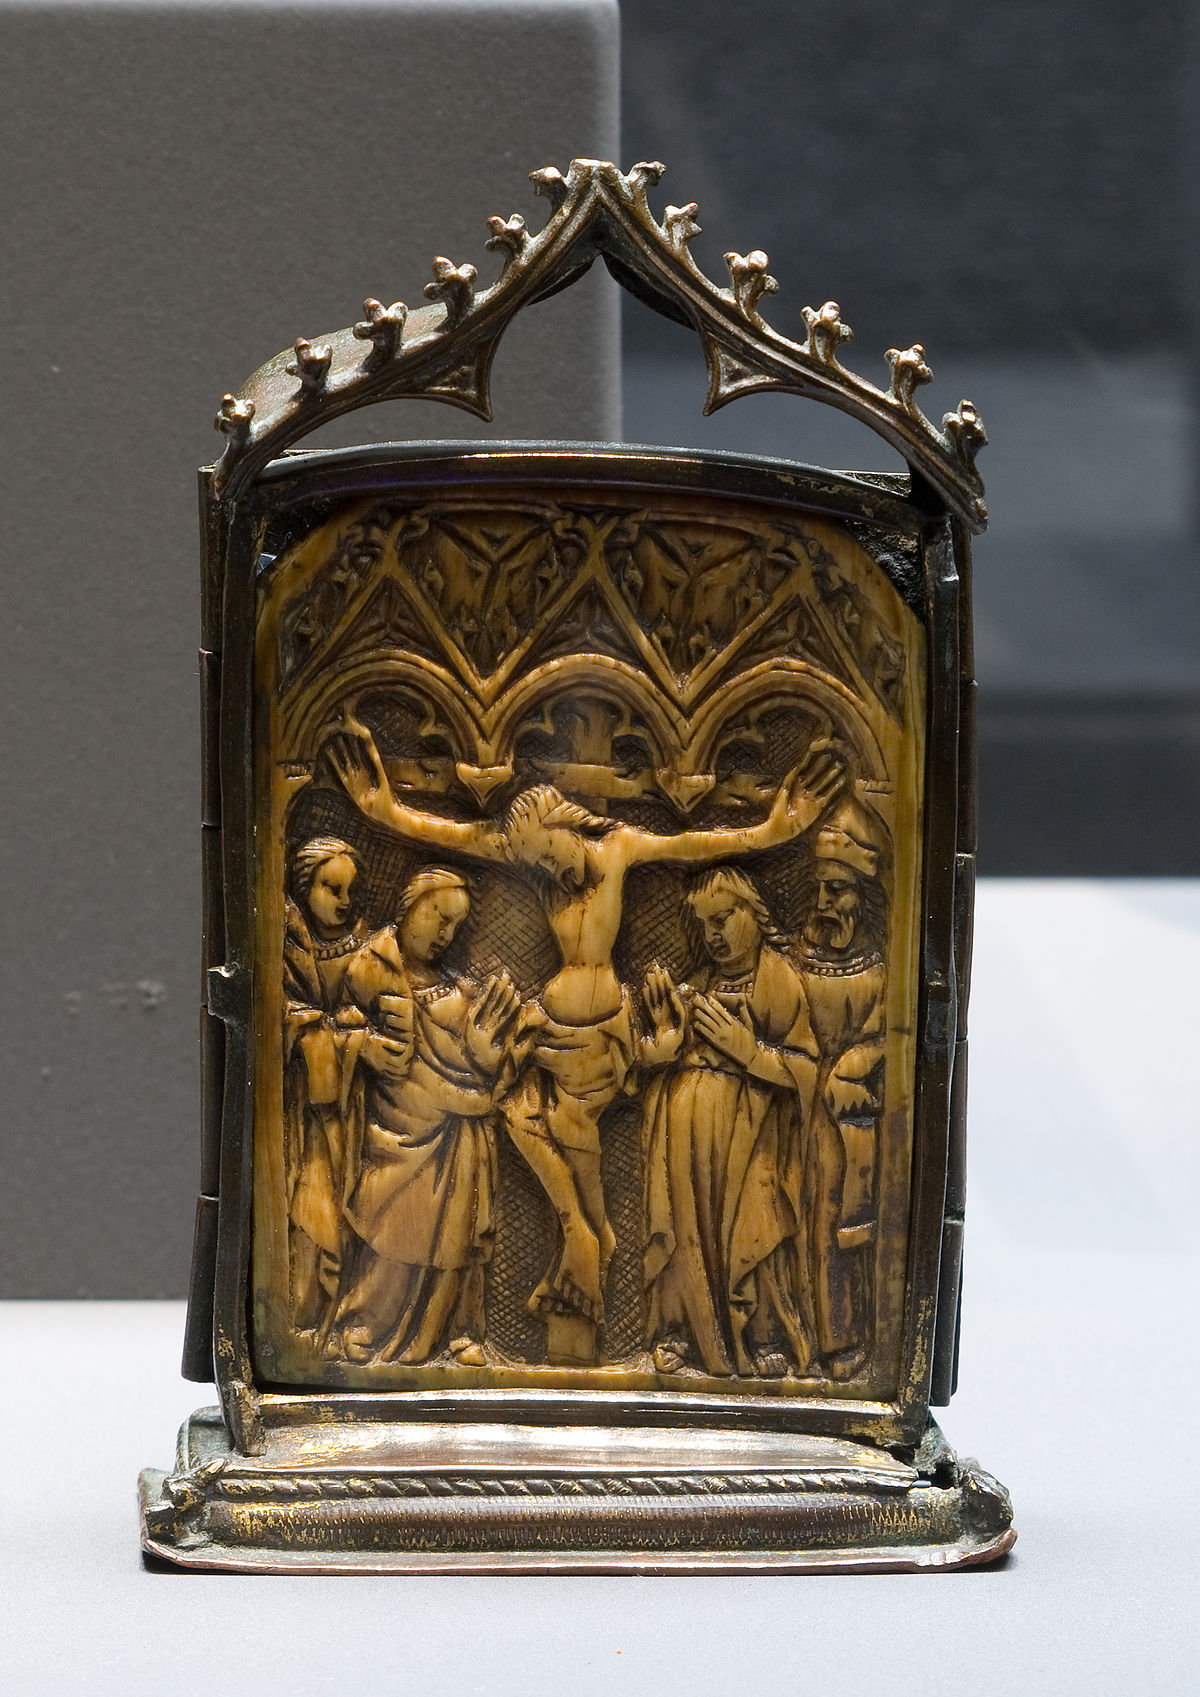 Pax liturgical object  Wikipedia